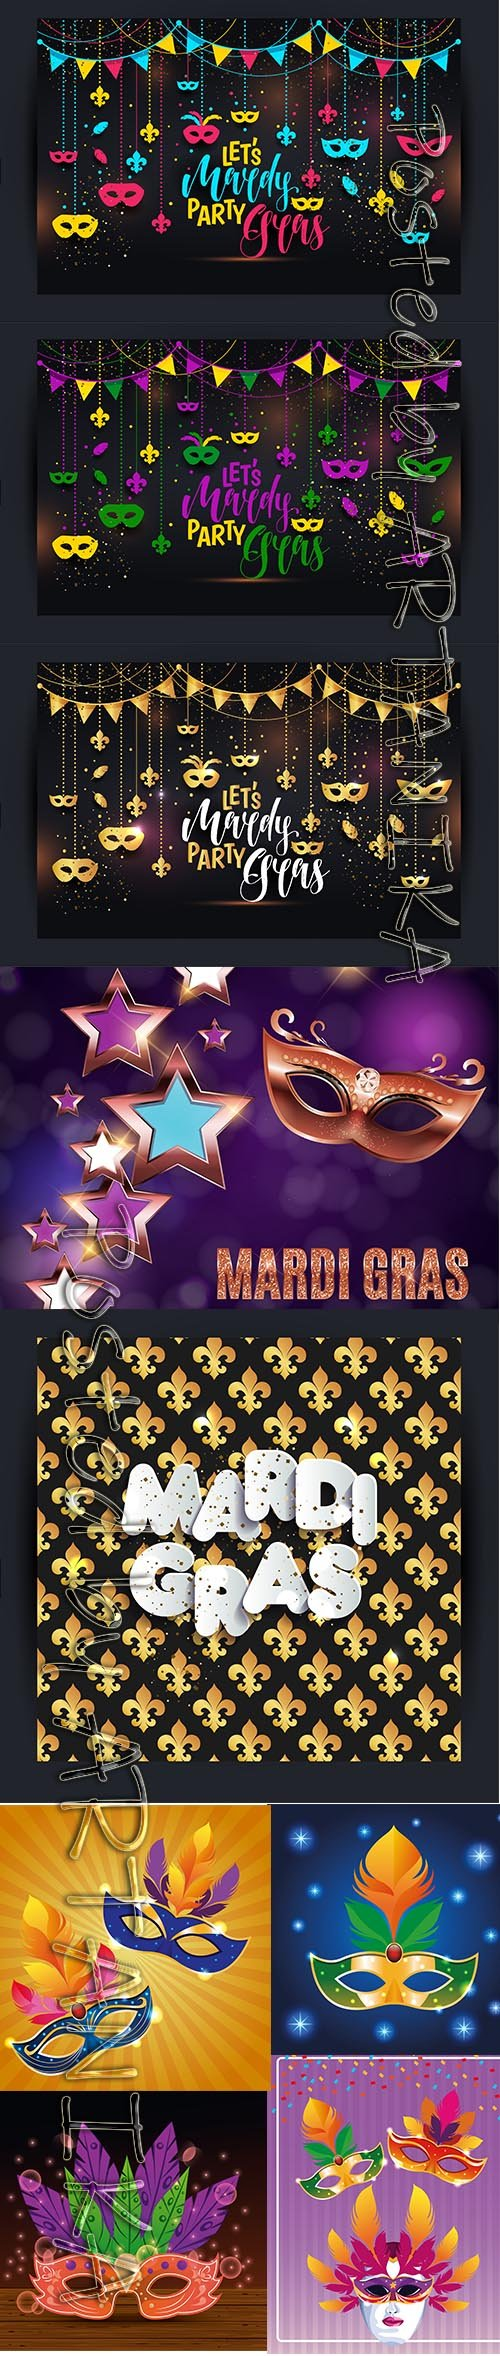 Mardi Gras Carnival Party Background Vector Pack Vol 5